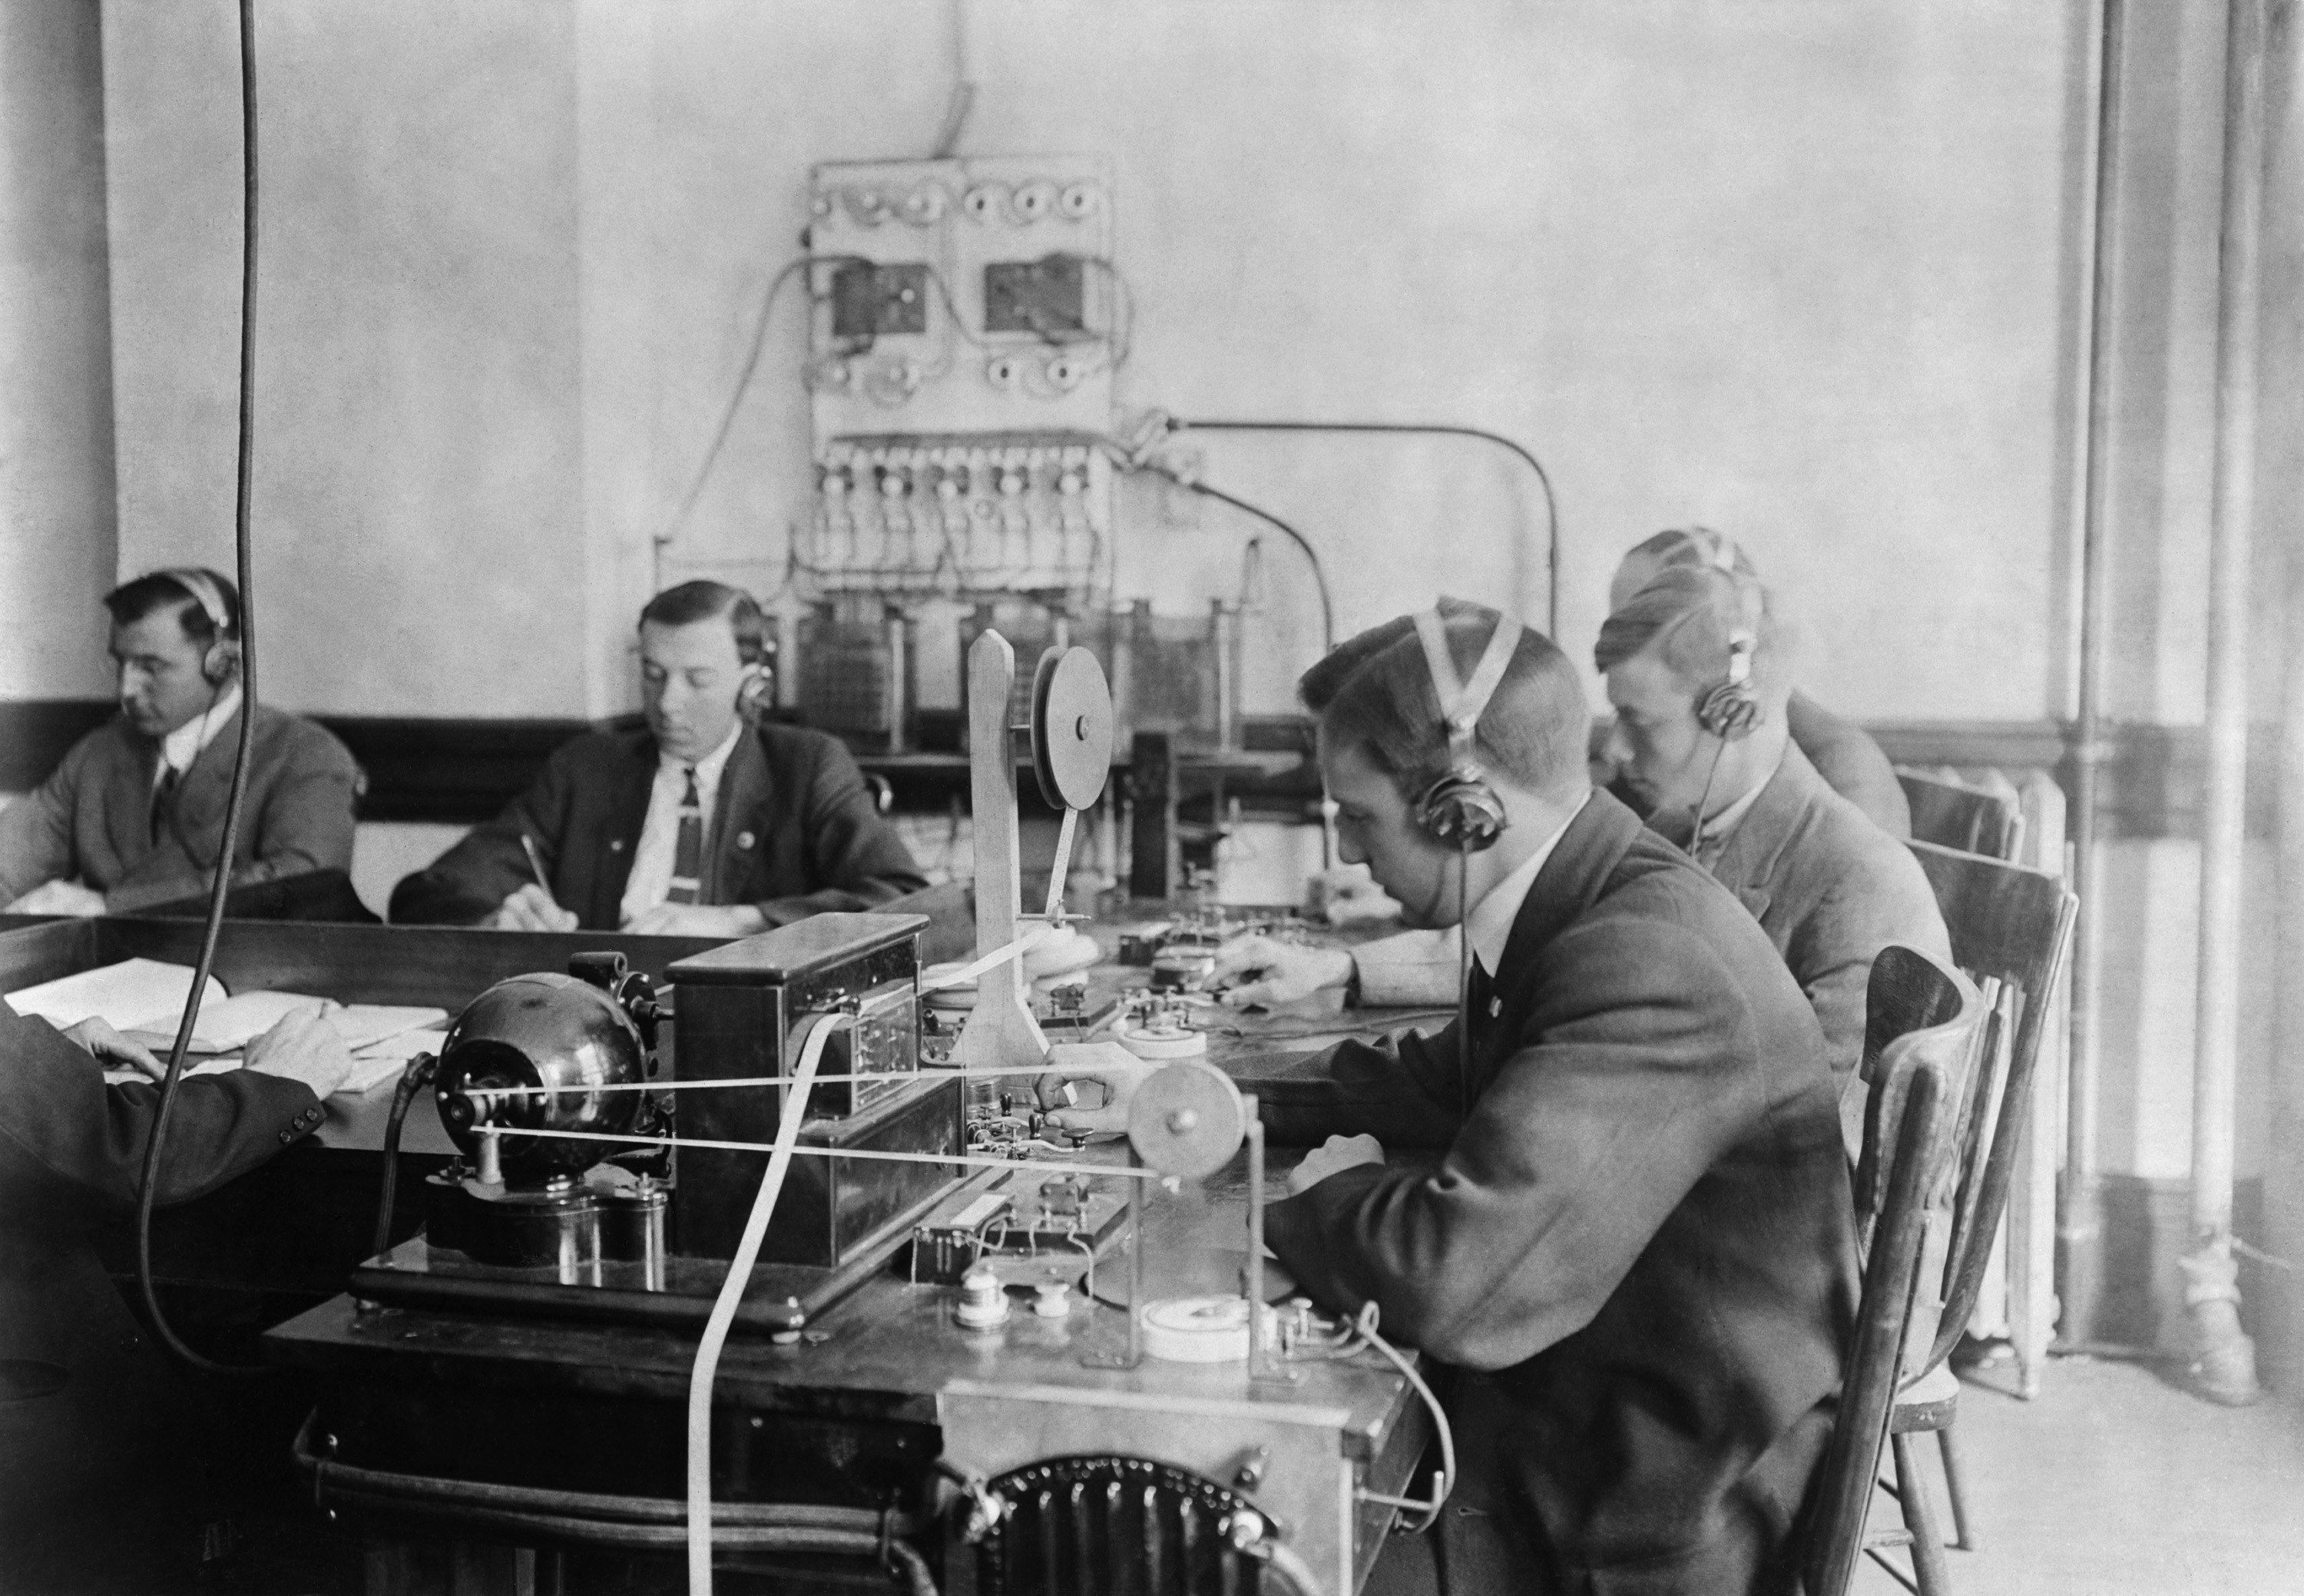 Students practicing telegraphy at the Marconi wireless school in New York City. Ca. 1912.